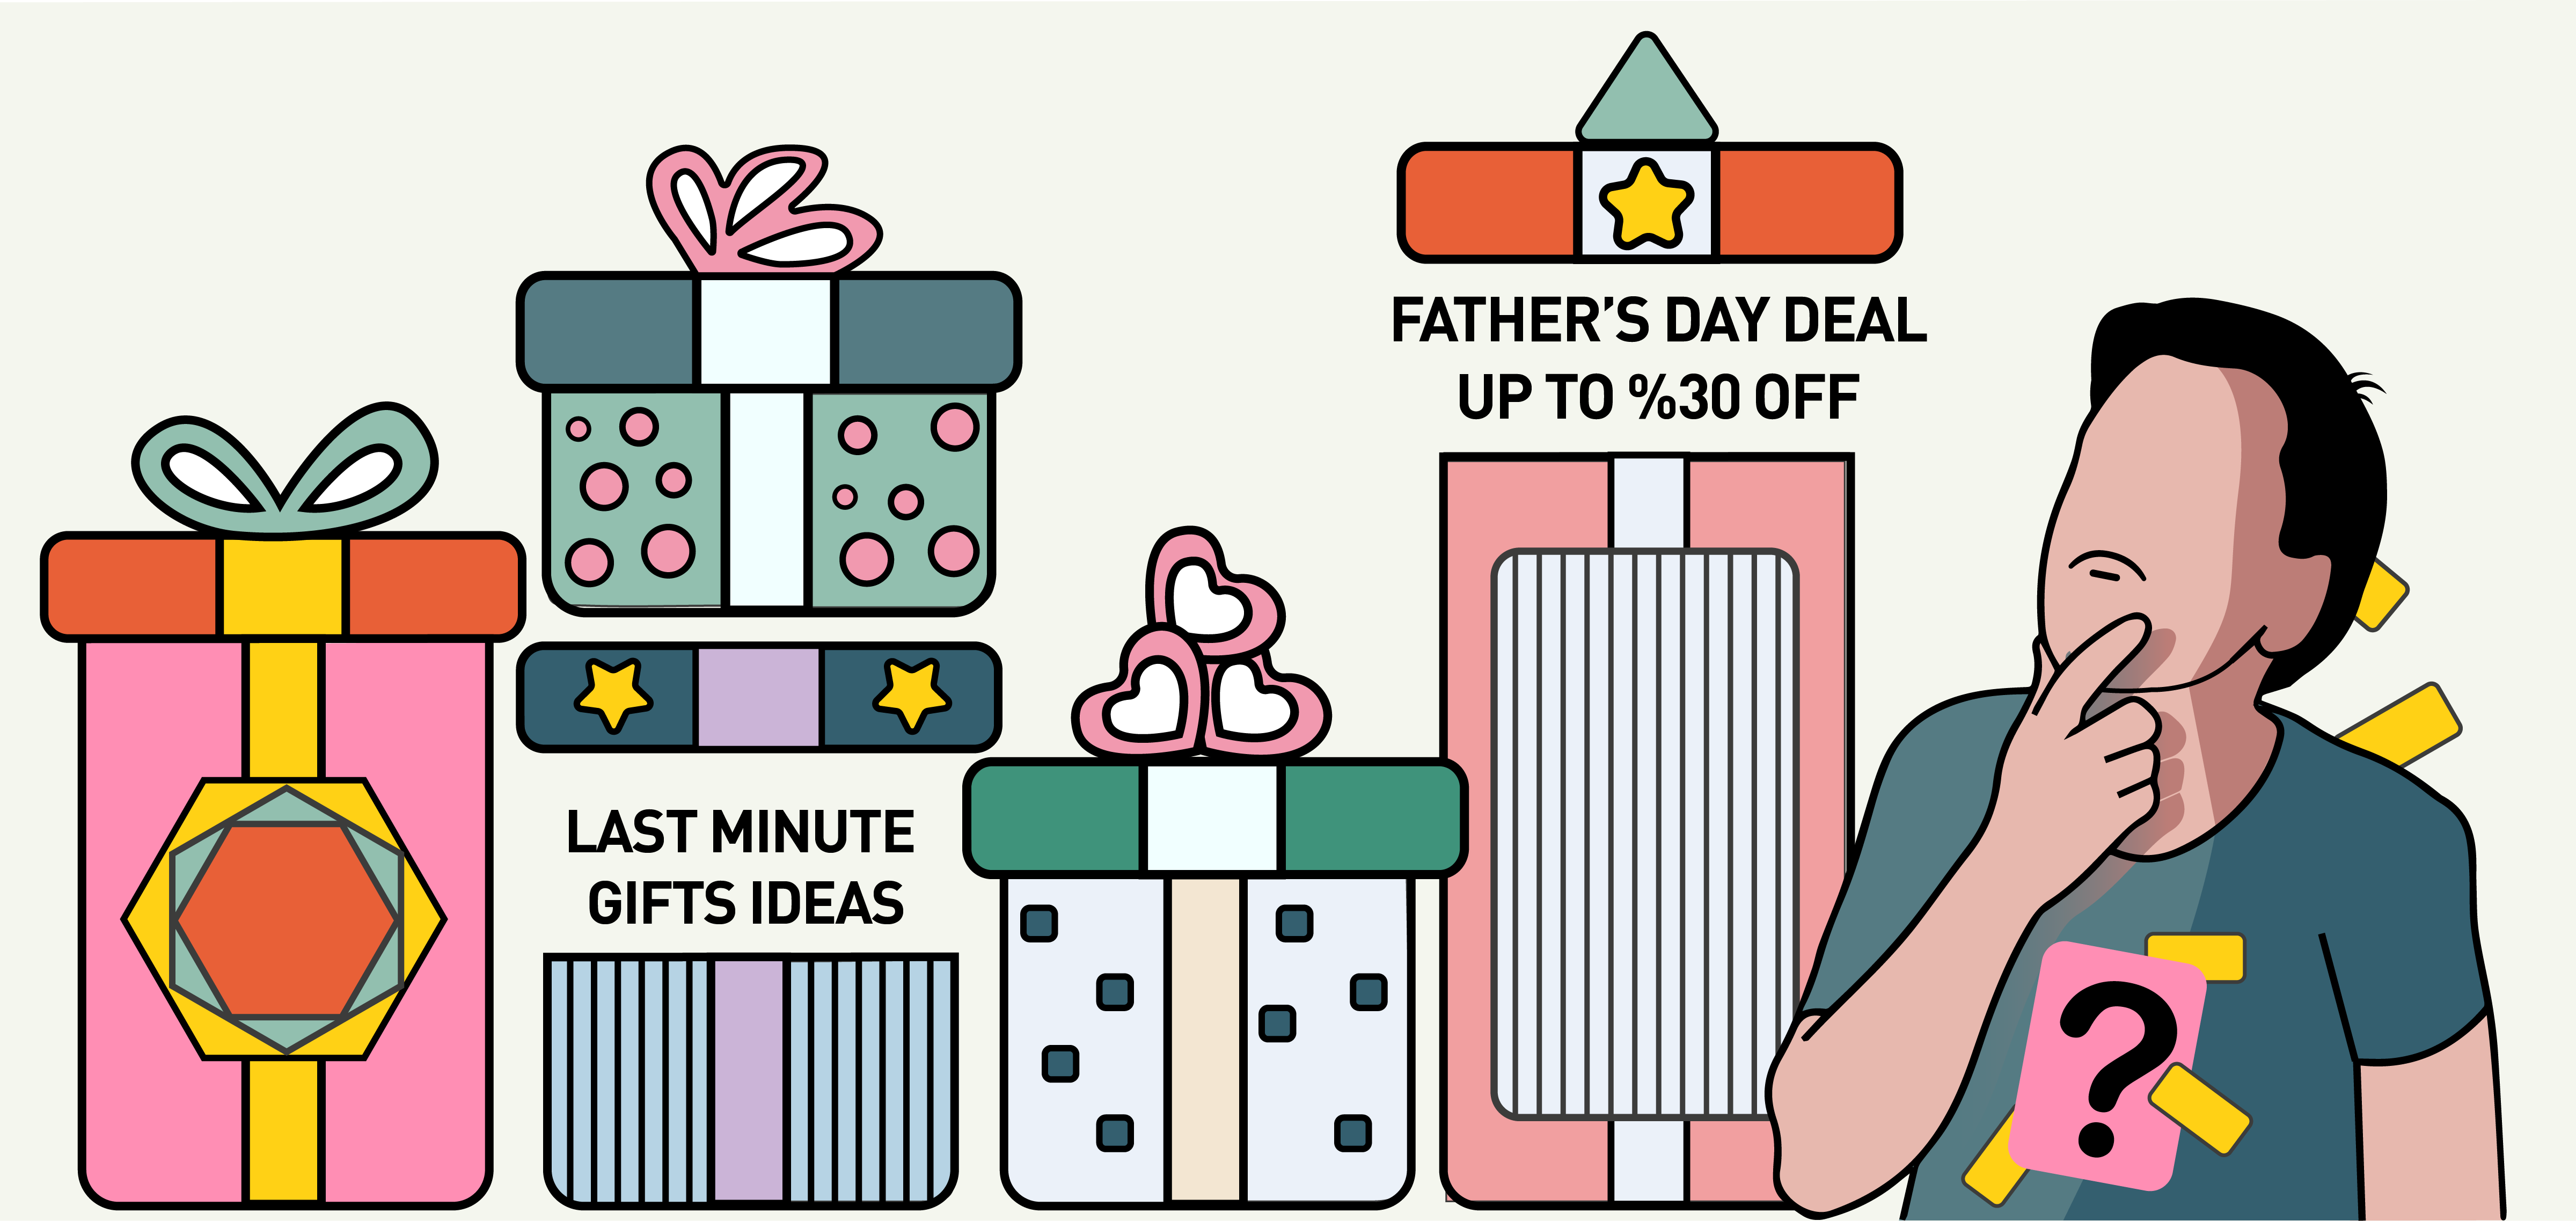 Segmentify - Best Practices for Father's Day Marketing Campaigns